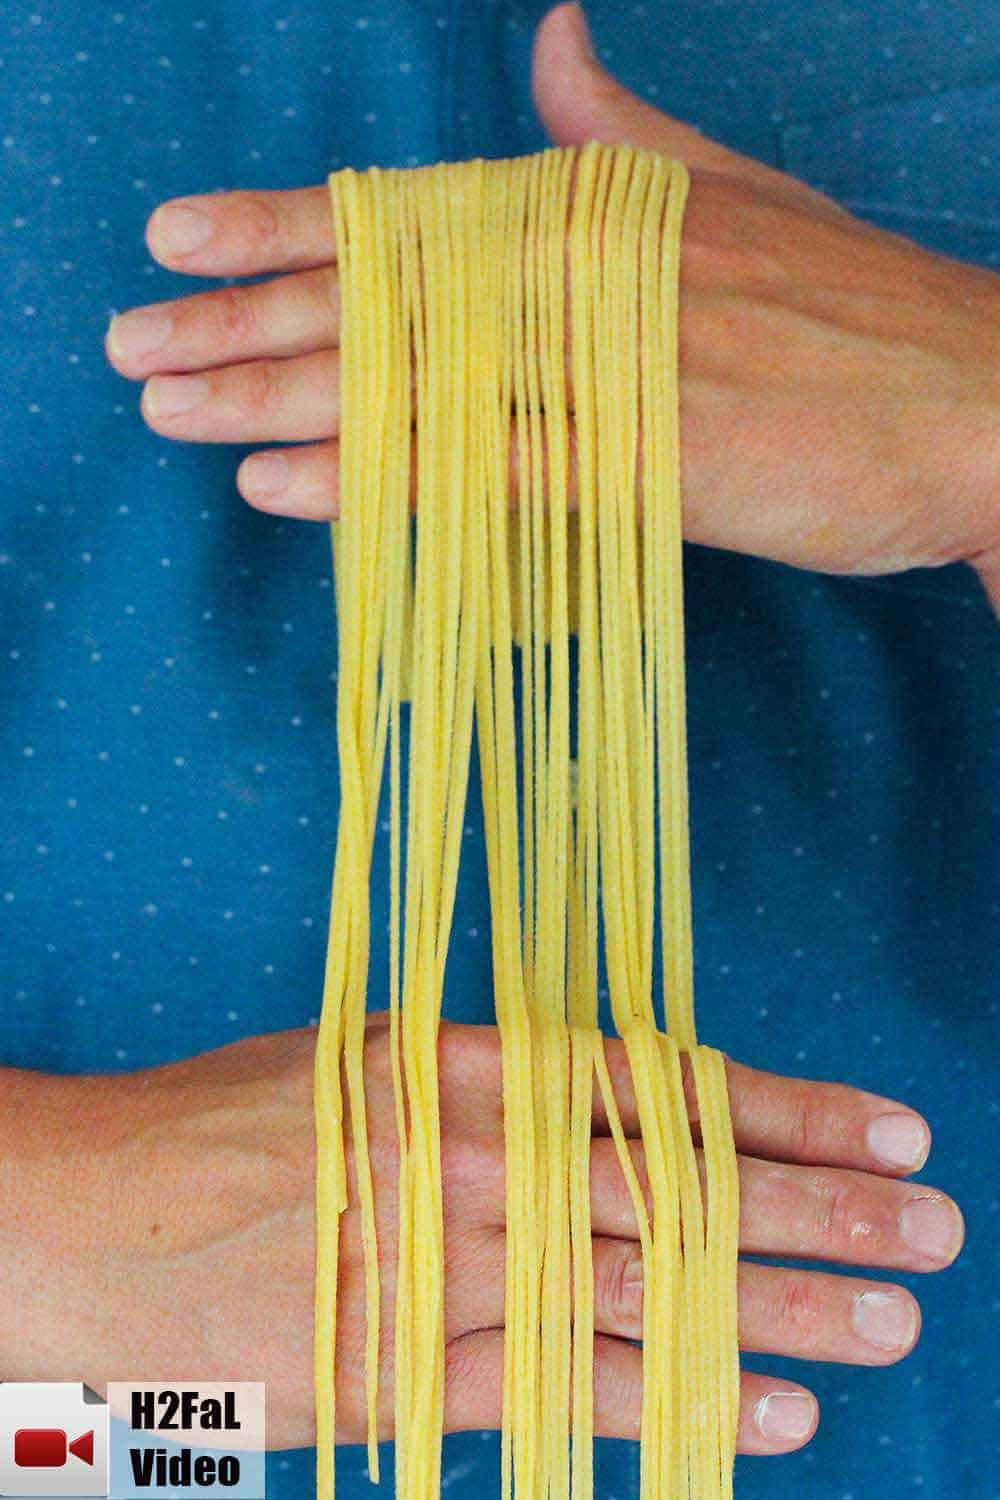 Two hands holding homemade pasta.